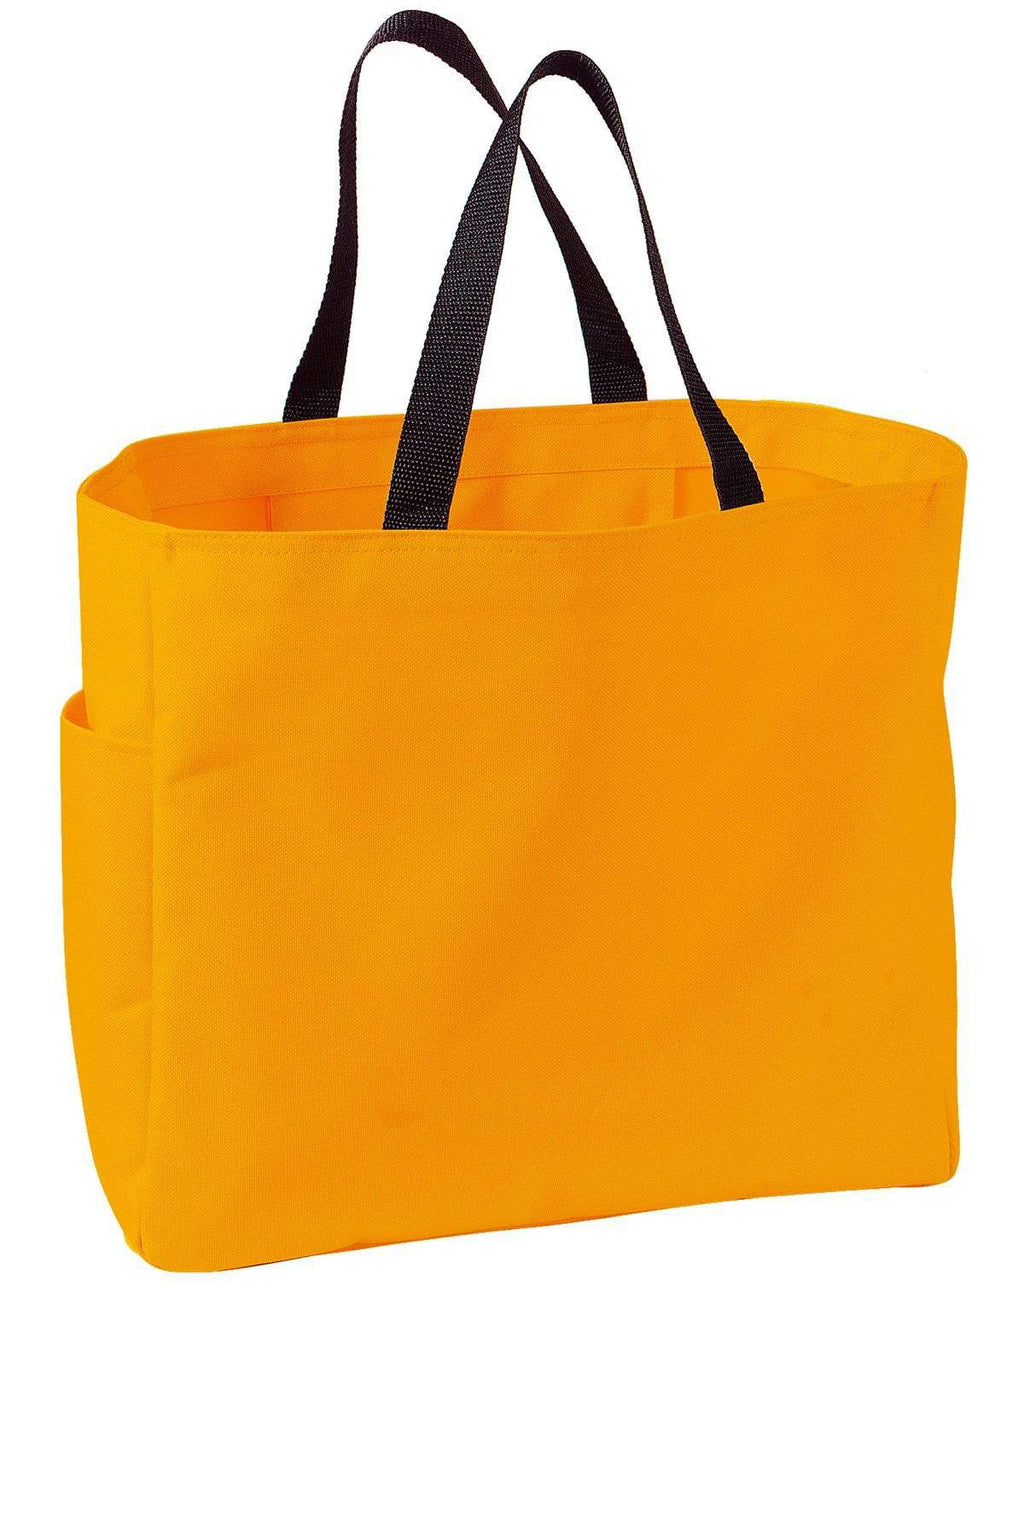 bag Canvas GOLD Essential Polyester Canvas Tote Bag